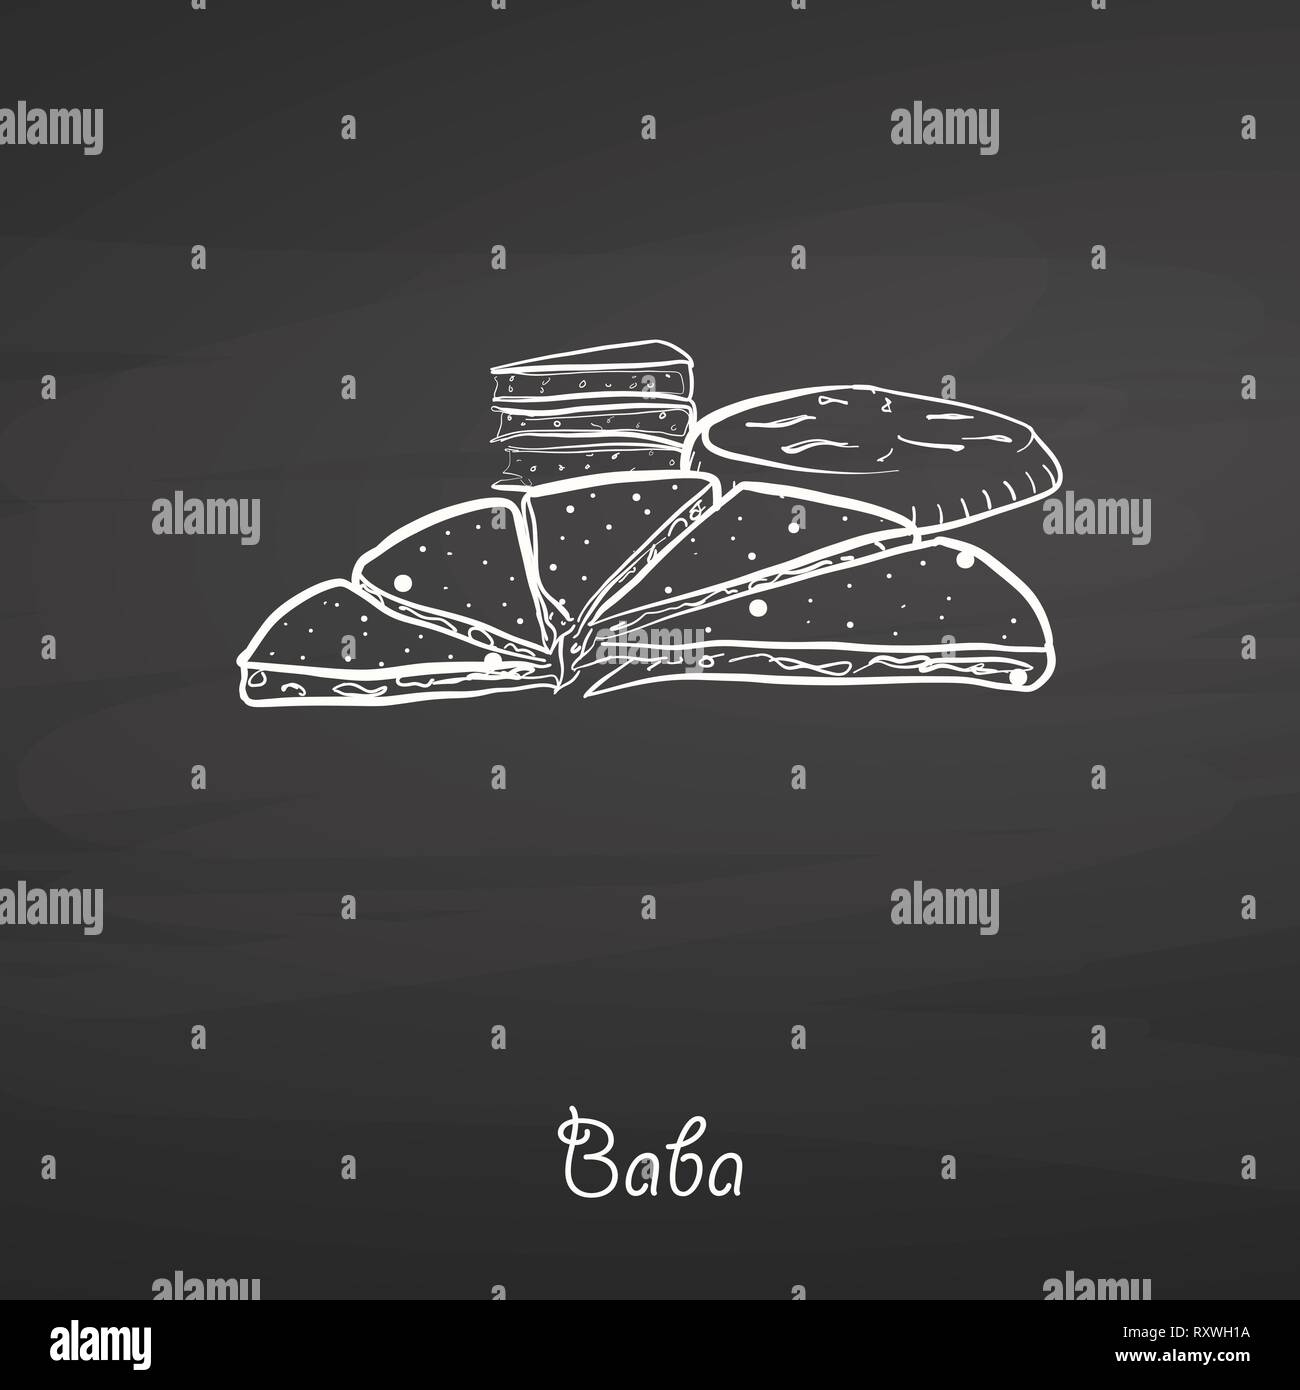 Baba food sketch on chalkboard. Vector drawing of Various thick, round breads, usually known in China, Yunnan, naxi, people. Food illustration series. - Stock Vector